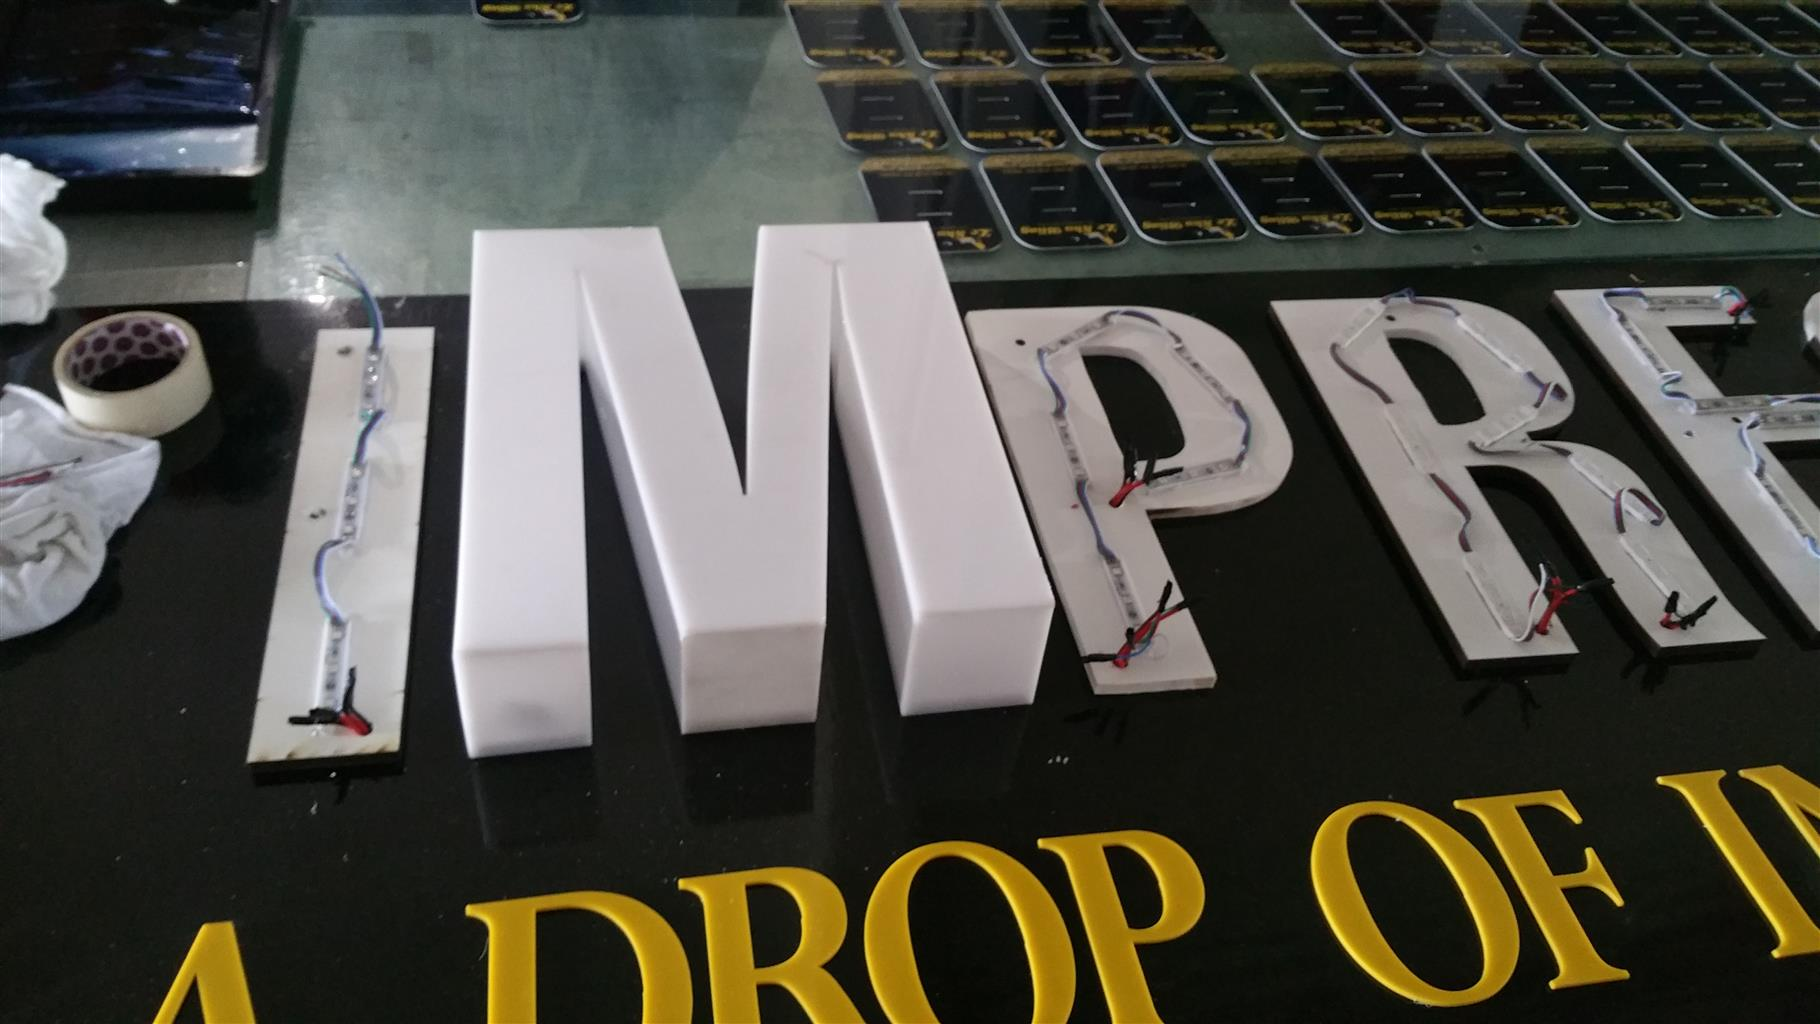 Signage, Laser cutting, rubberstamps, bussiness cards, shopsigns, perspex signs, Flyers,carwraps.